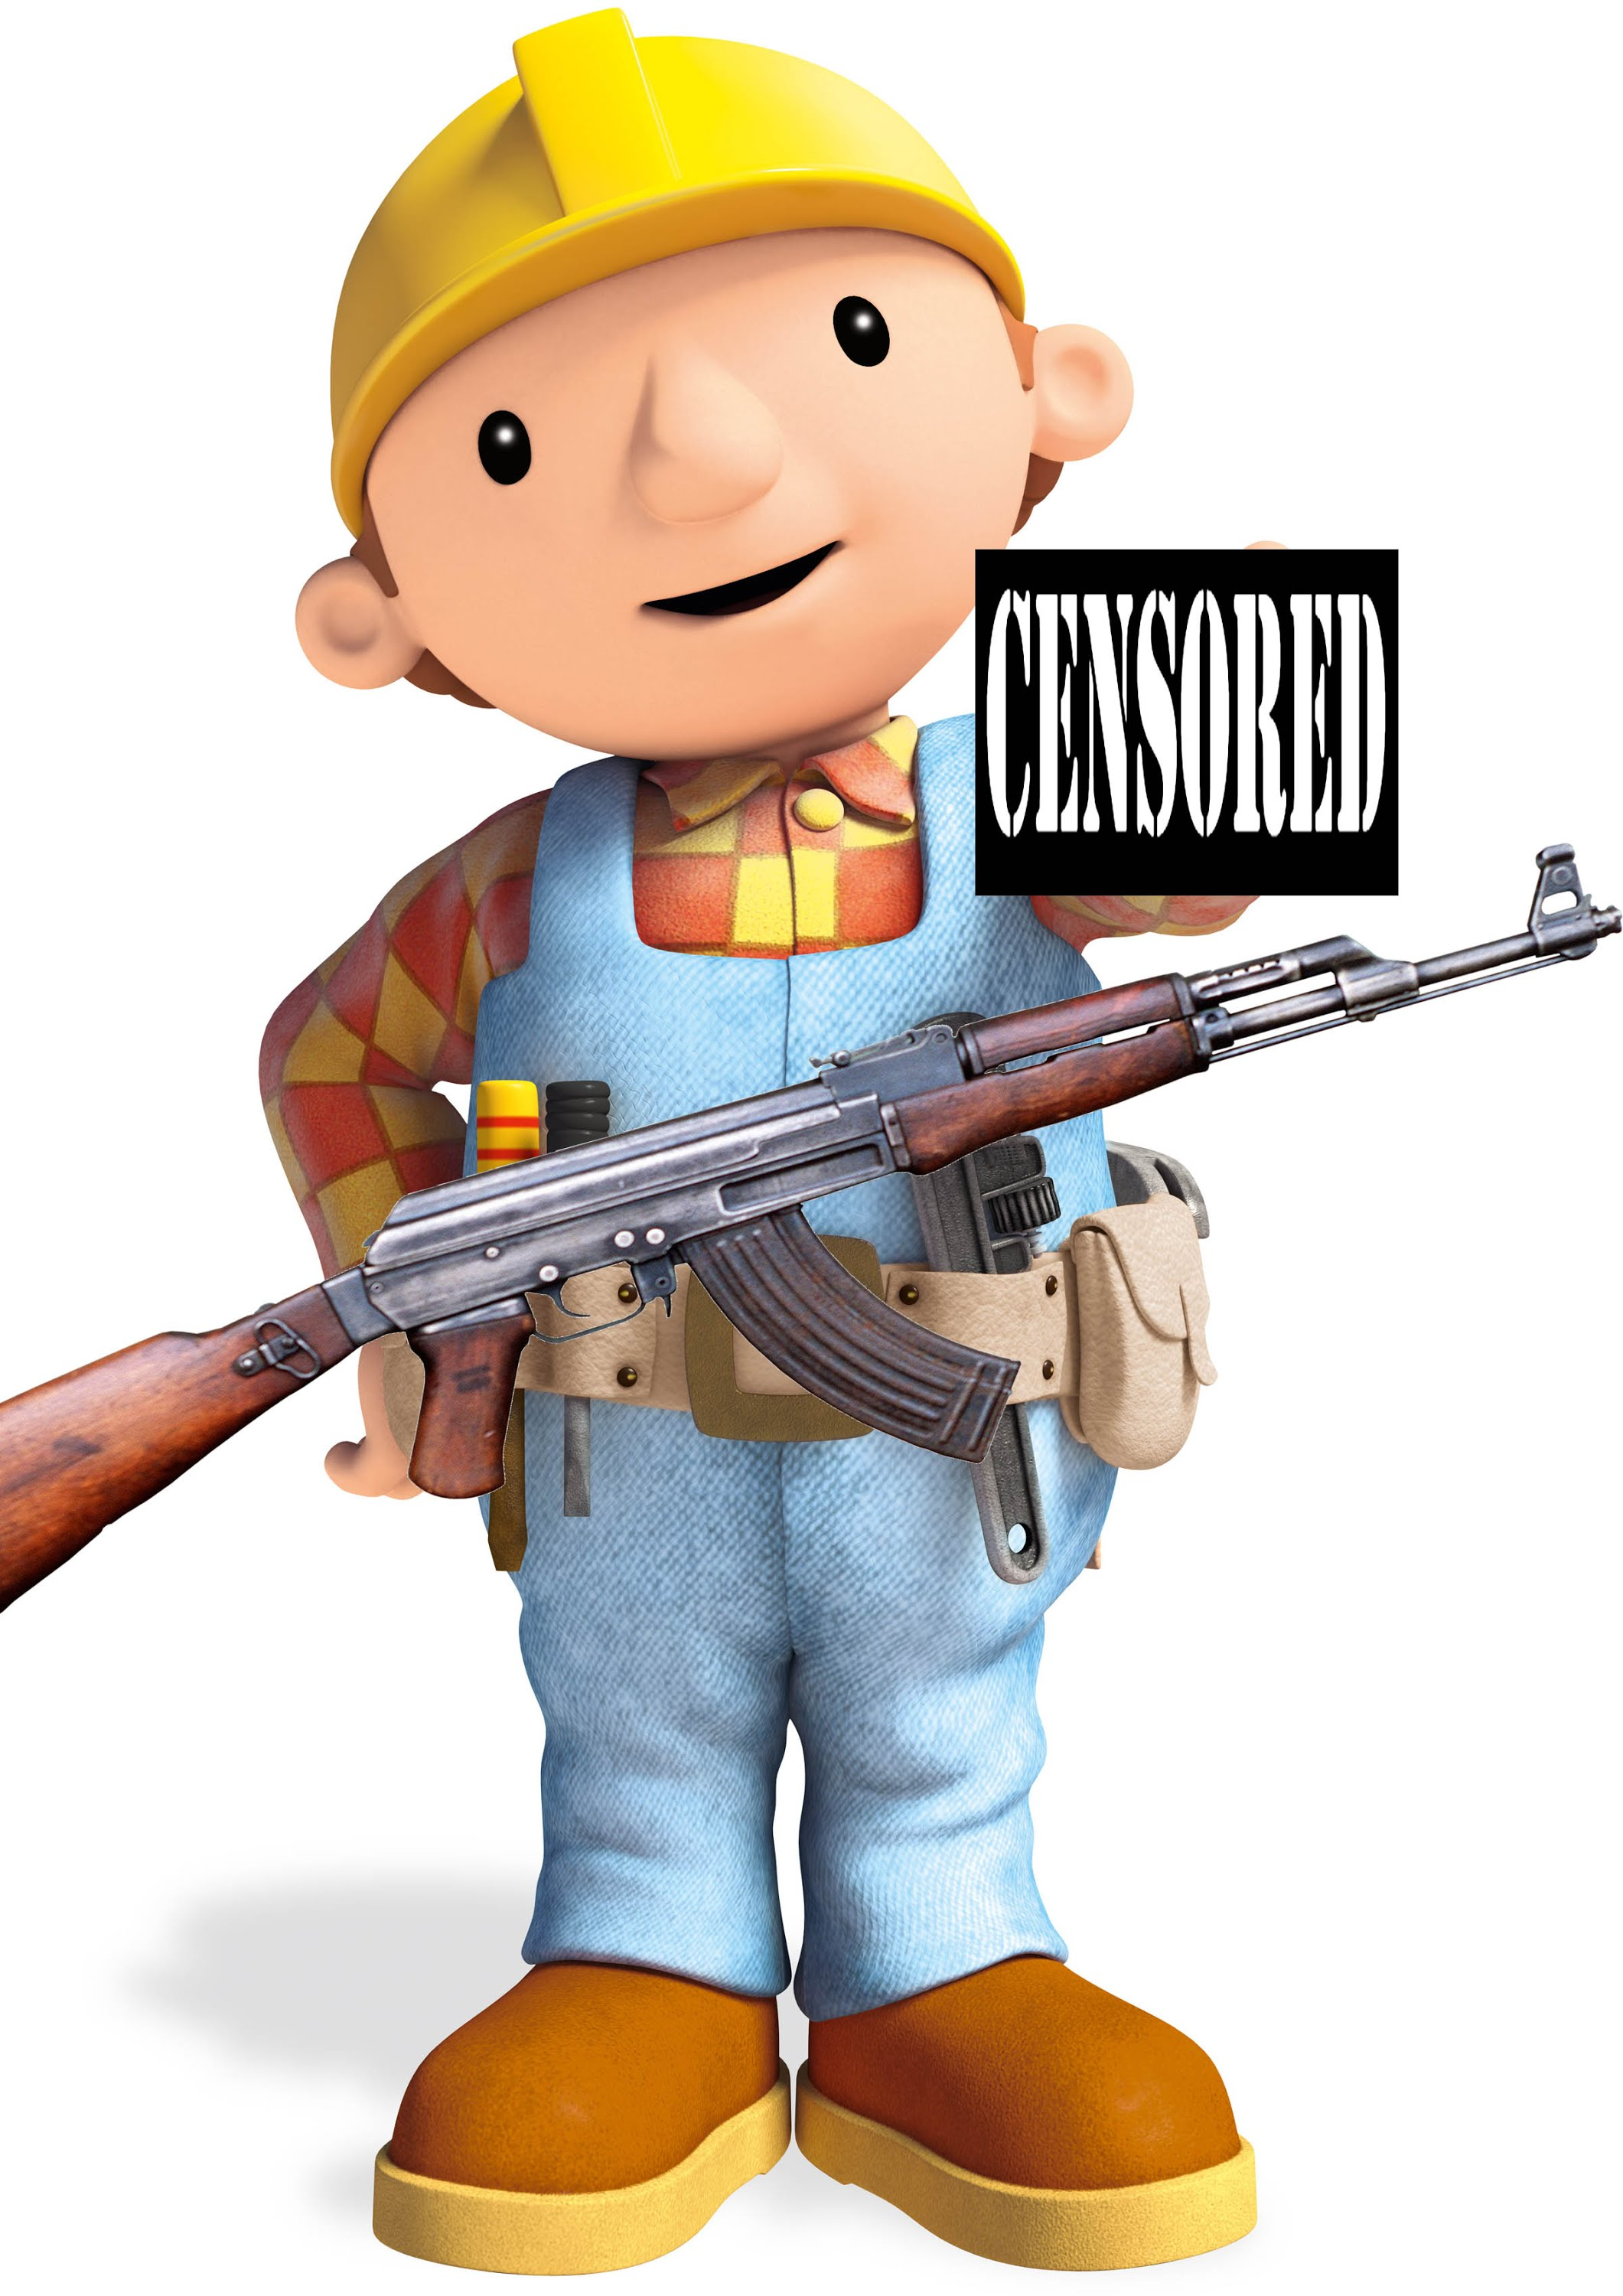 so this is the new bob the builder childhood ruined by bakoahmed